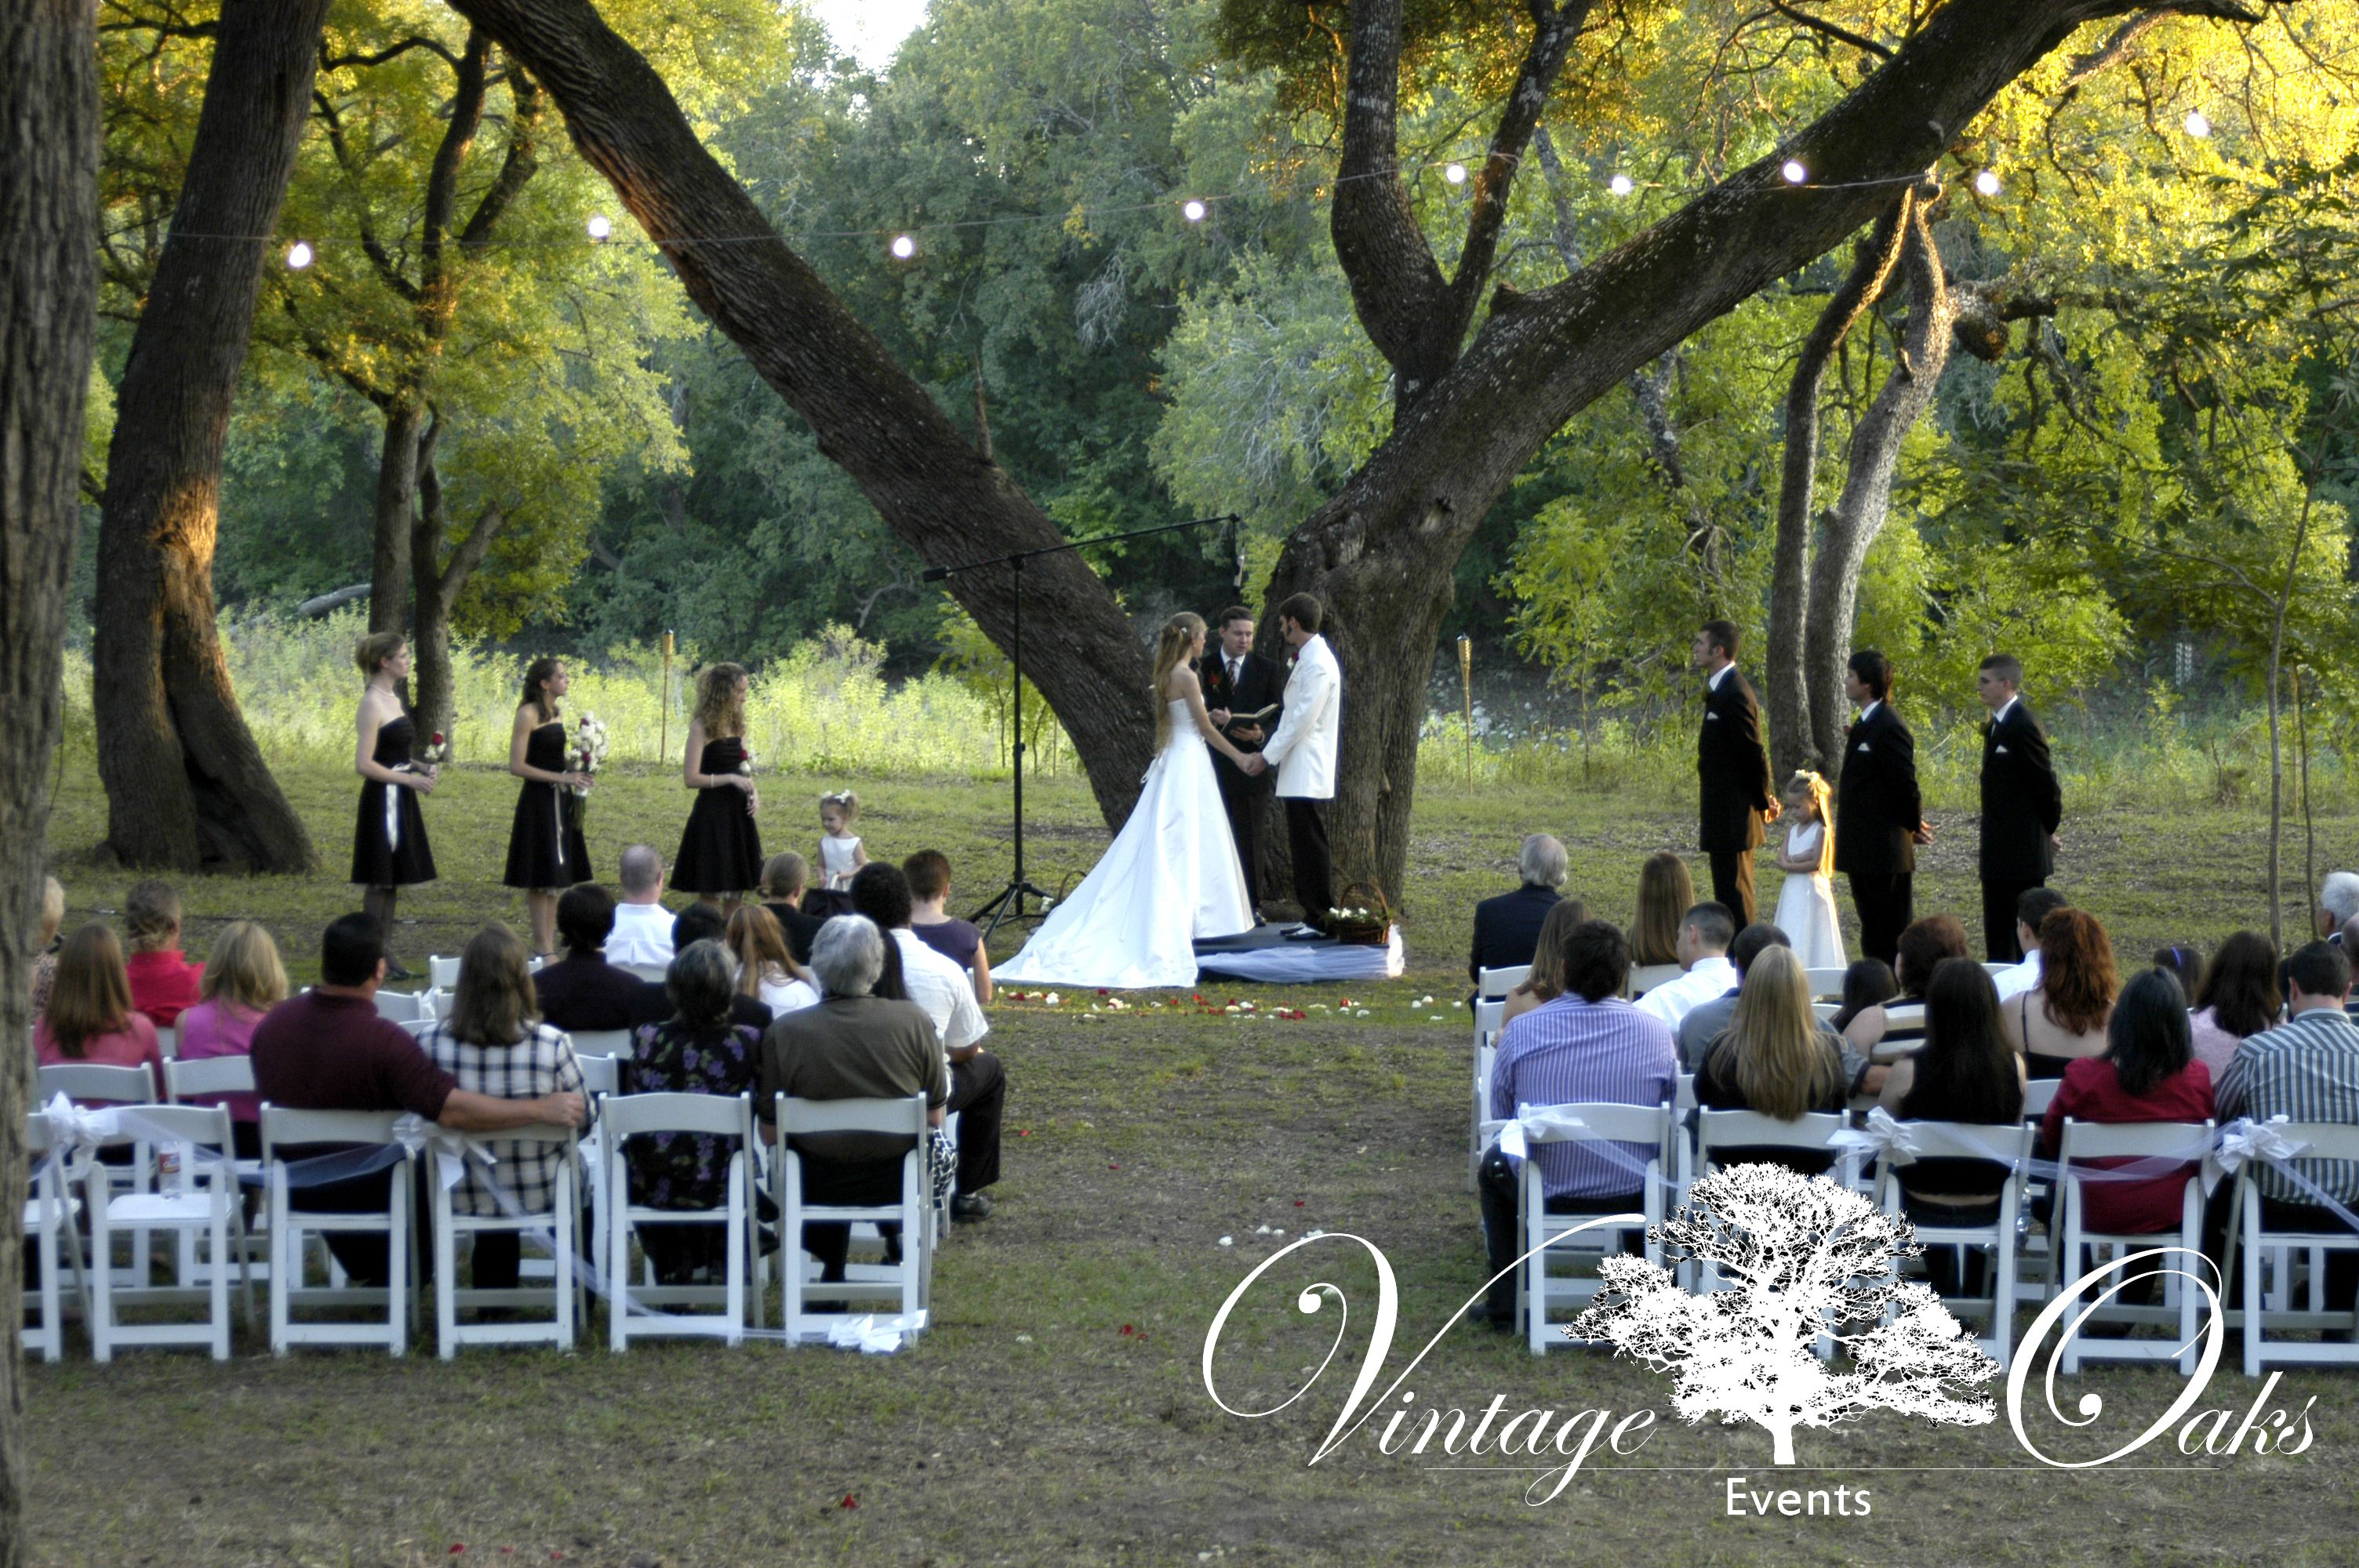 small outdoor wedding classic black and white decor ceremony